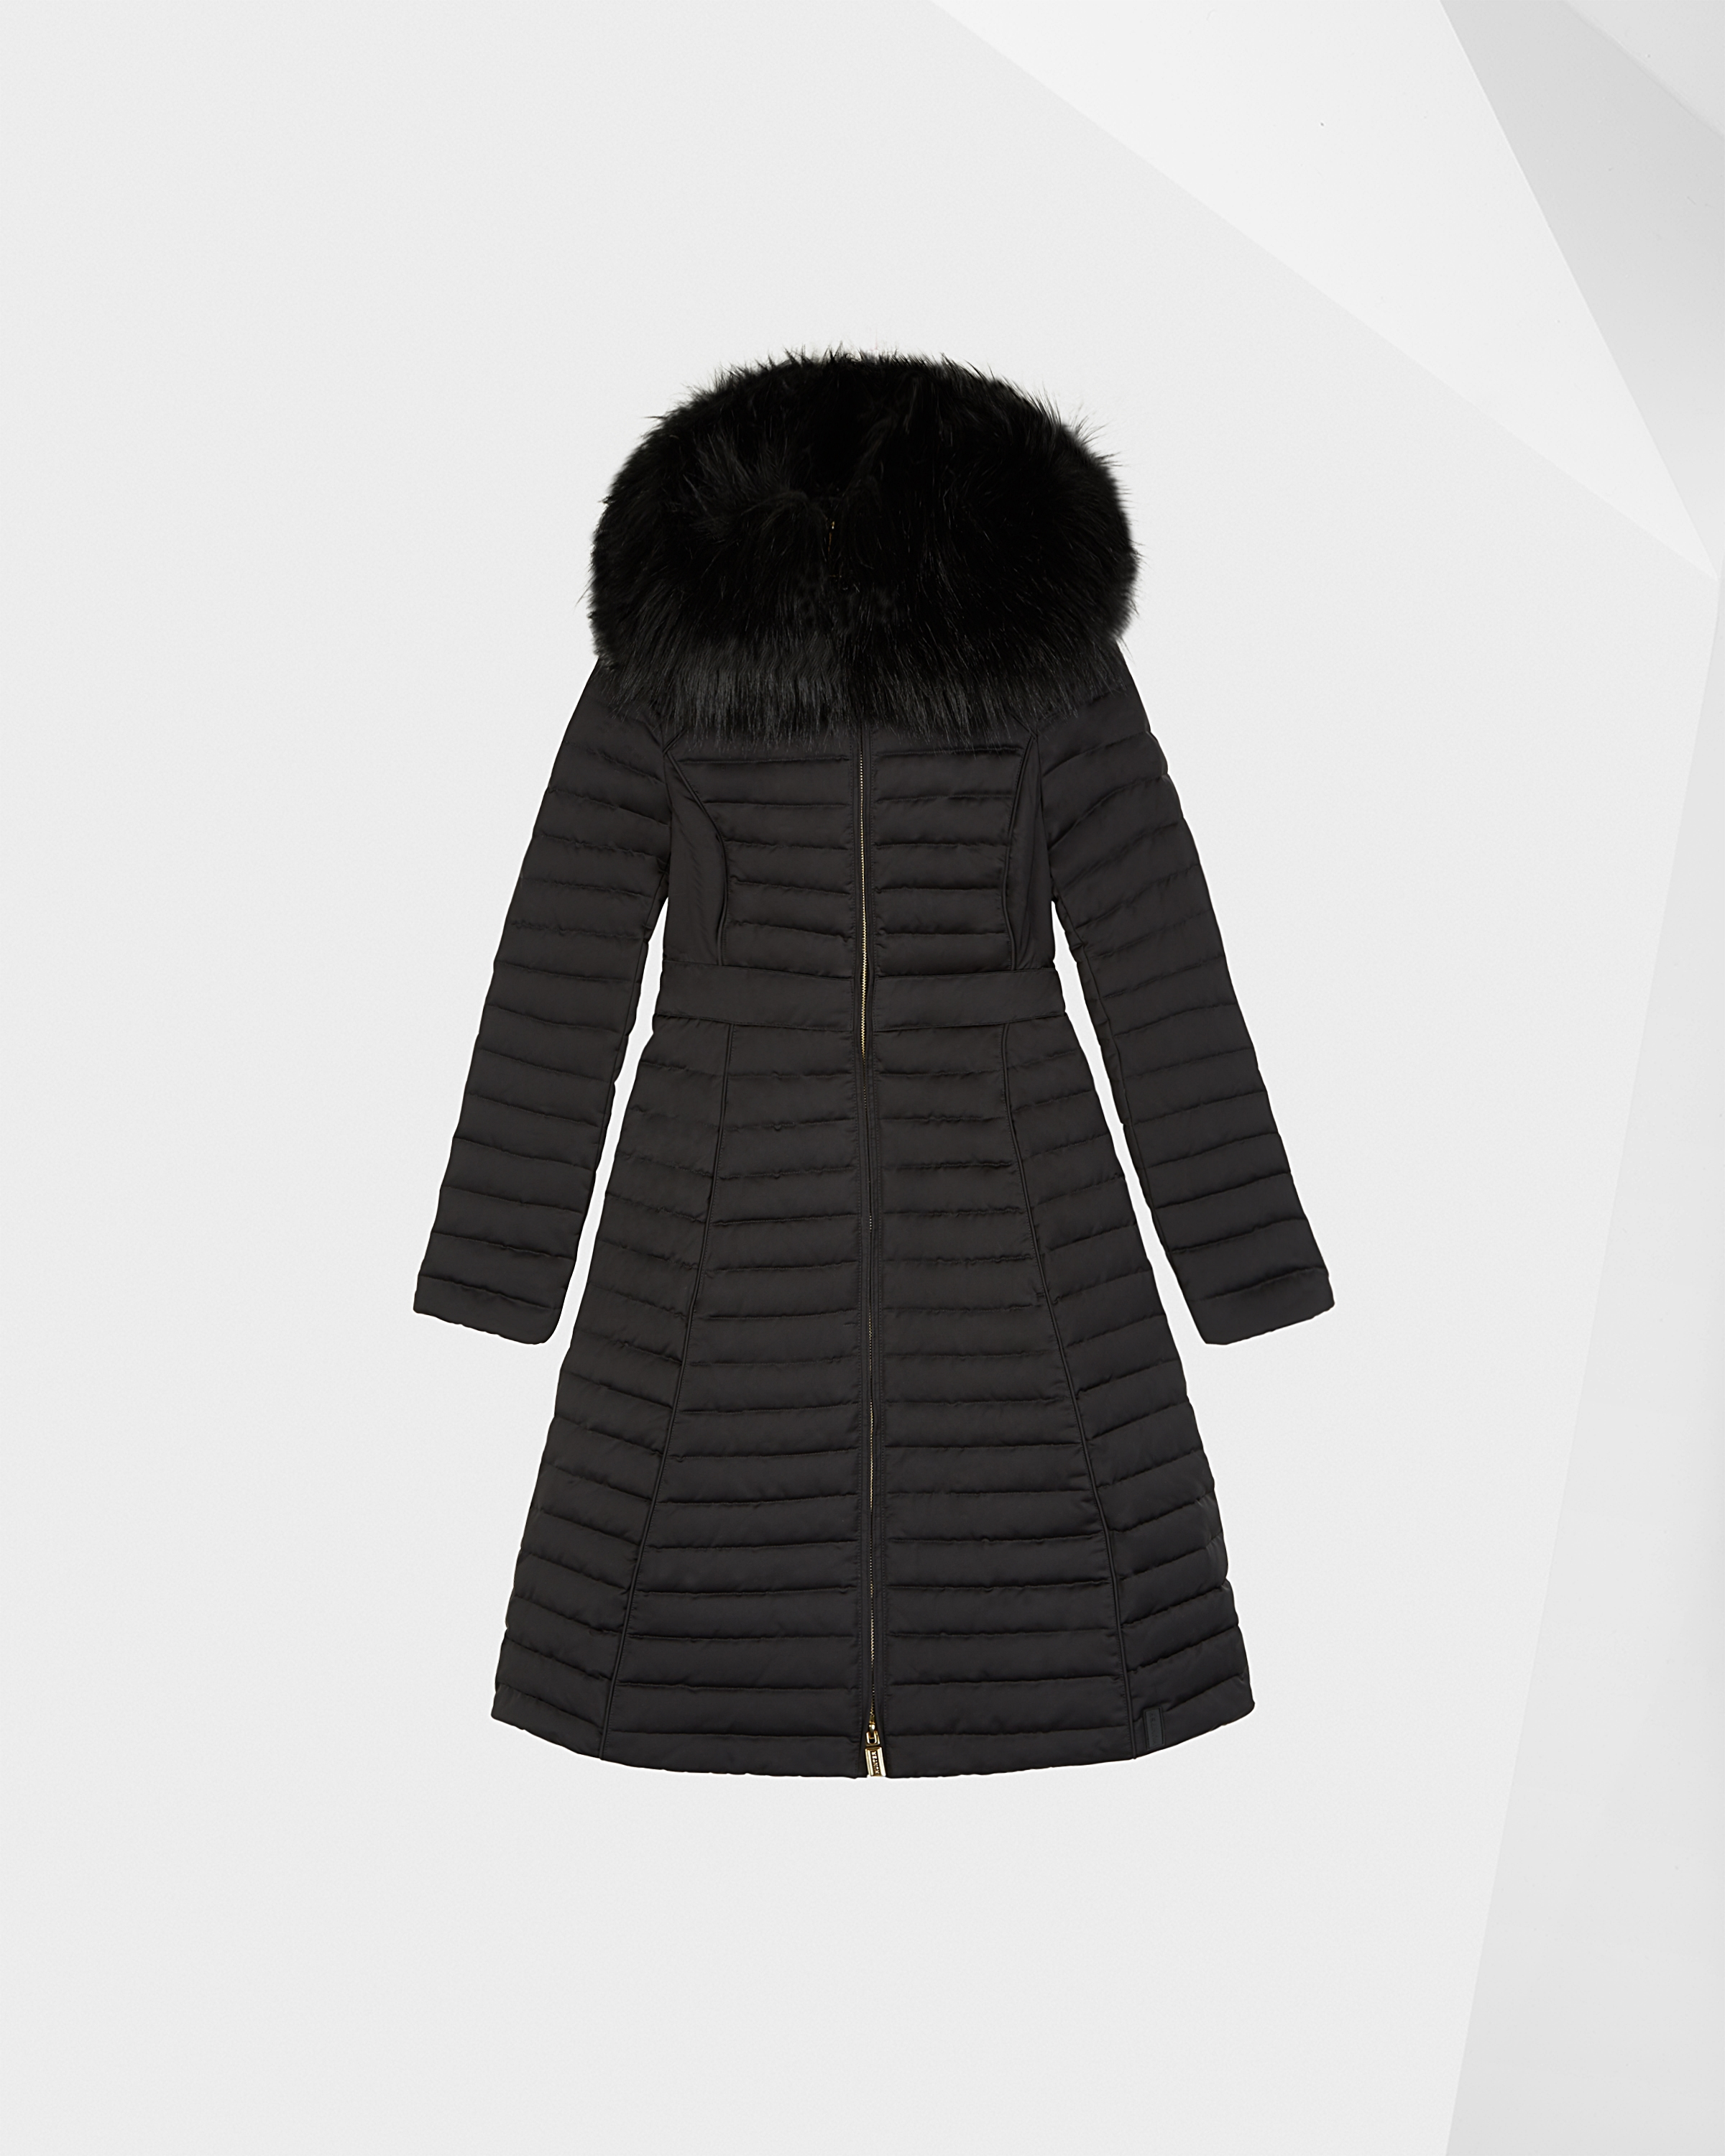 876a46bc83d13 Womens Black Women's Refined Down Coat with Faux Fur Hood | Official Hunter  Boots Store